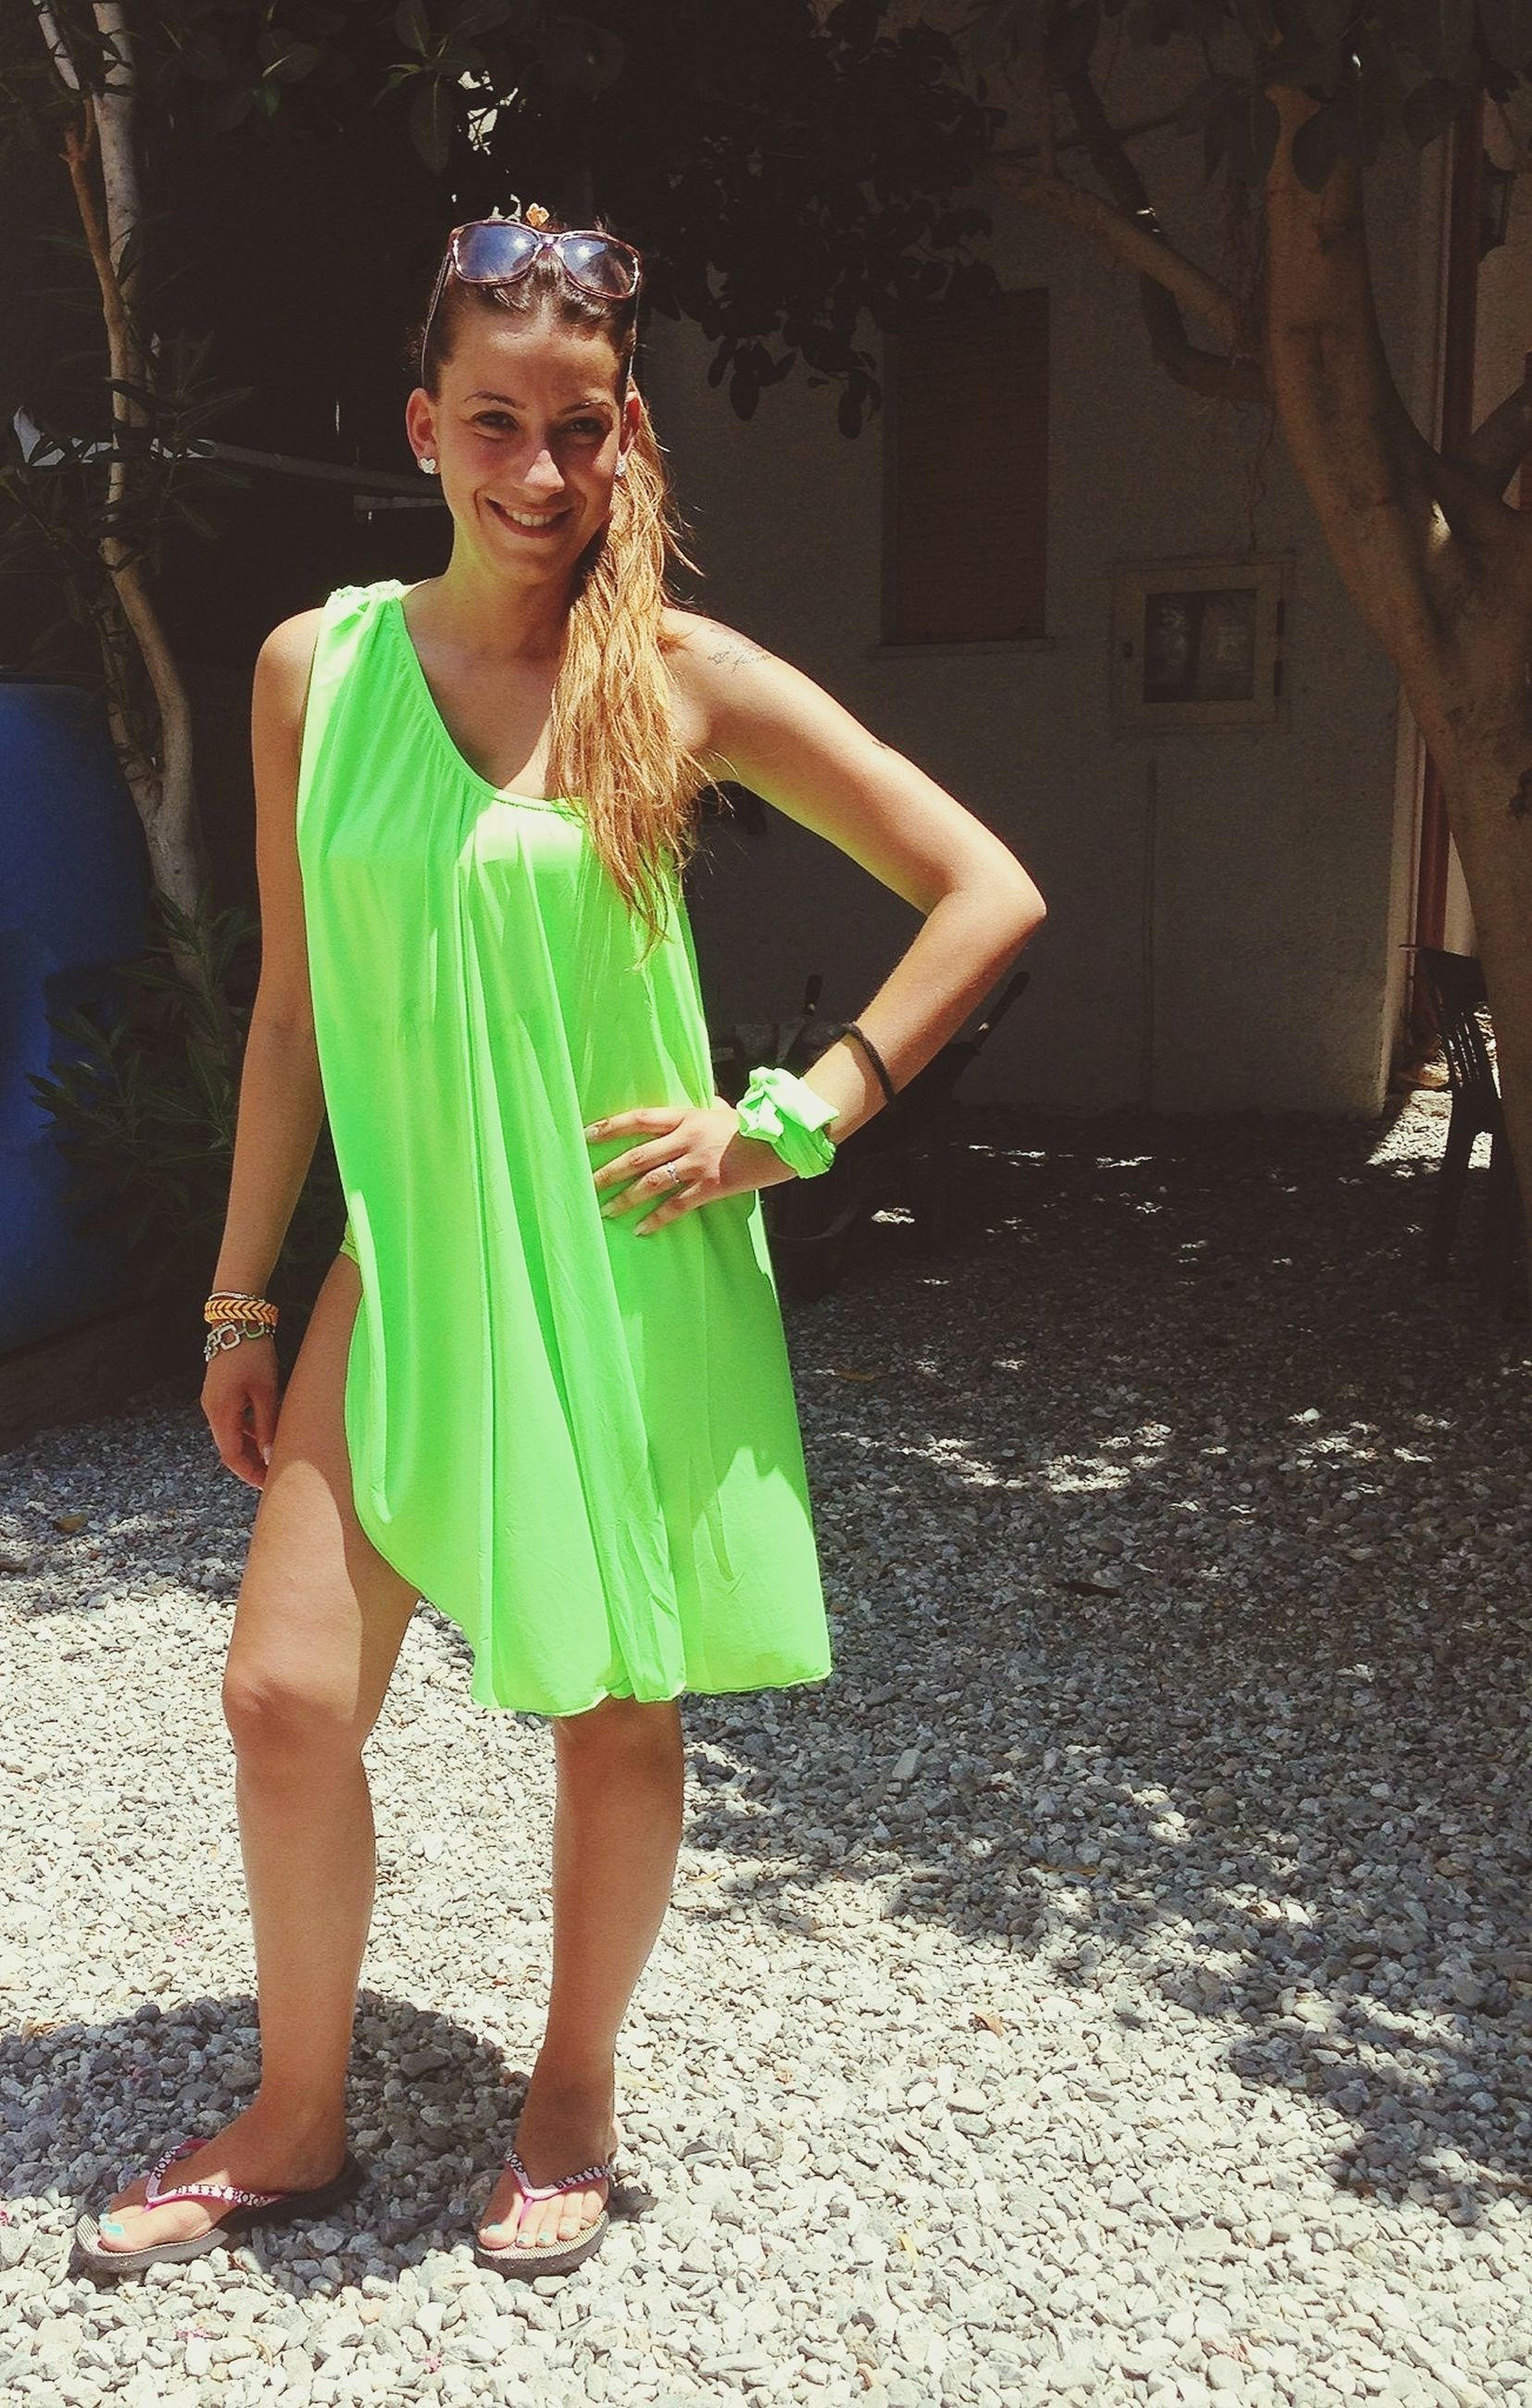 full length, person, lifestyles, young adult, casual clothing, leisure activity, front view, young women, standing, looking at camera, portrait, happiness, smiling, holding, three quarter length, dress, outdoors, fun